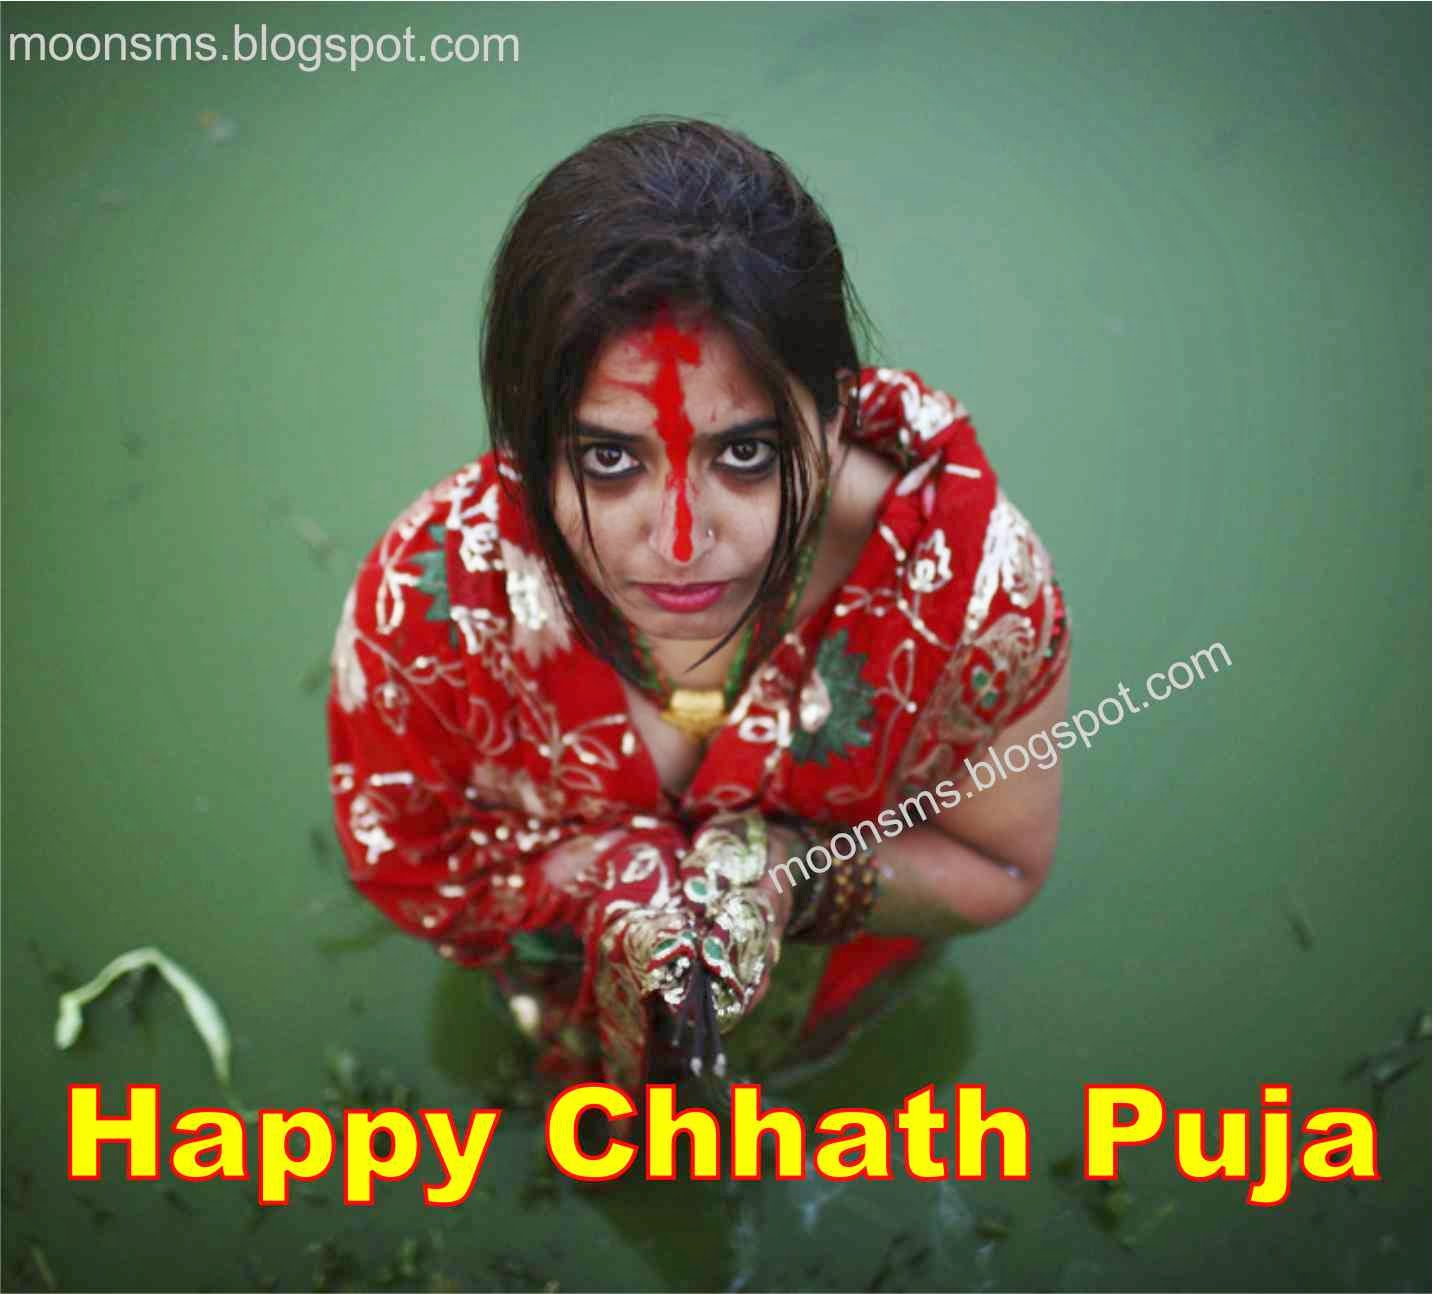 Chhtath puja image Picture HD wallpaper Photo Greeting with message